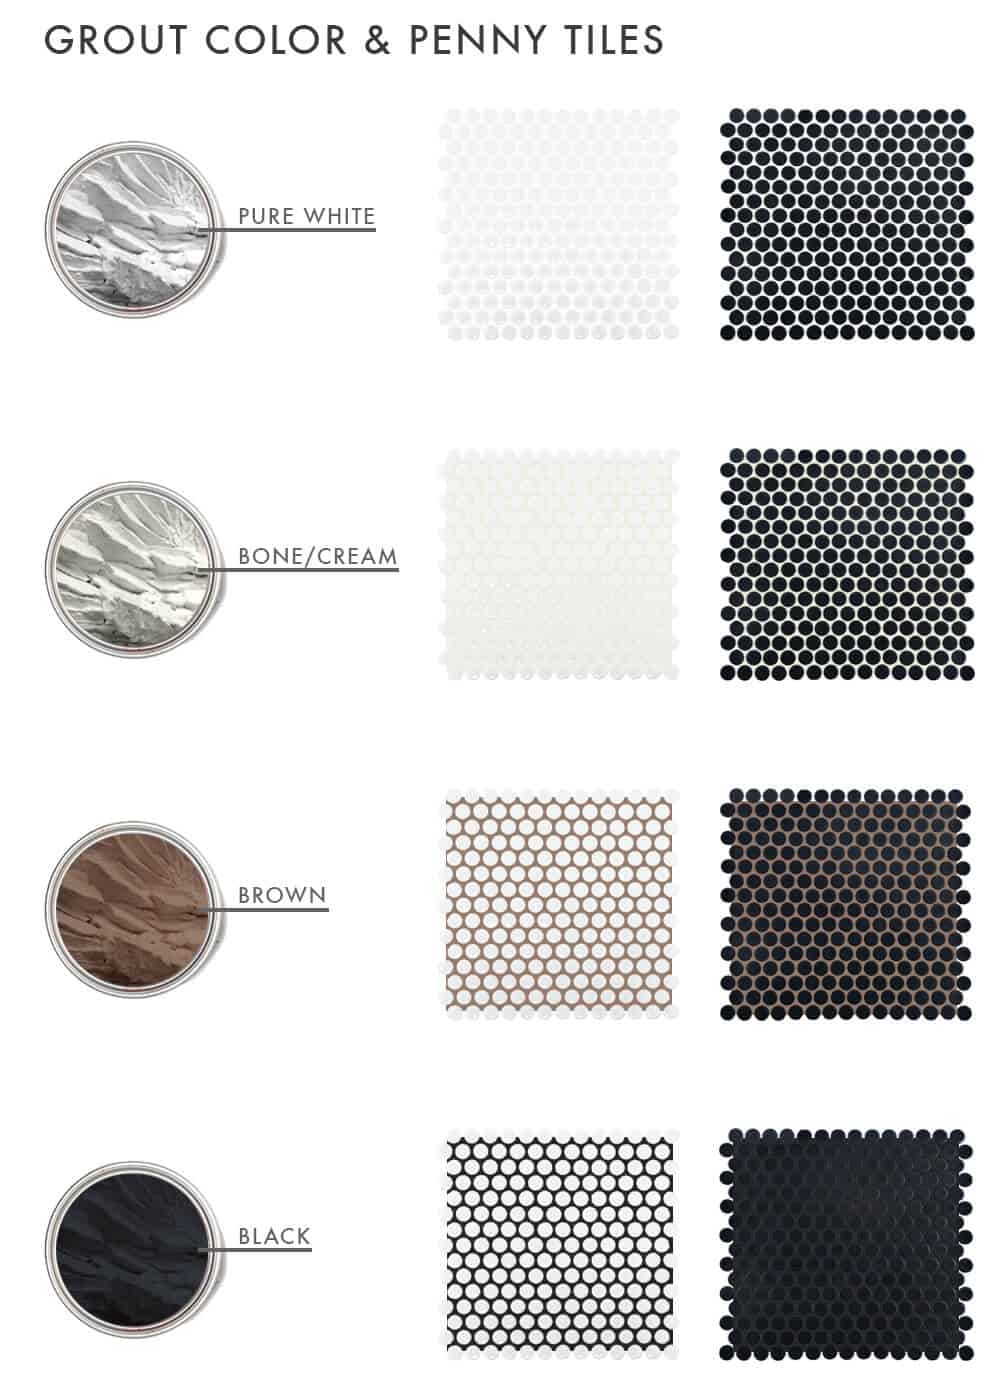 grout-color-and-penny-tiles-emily-henderson-design